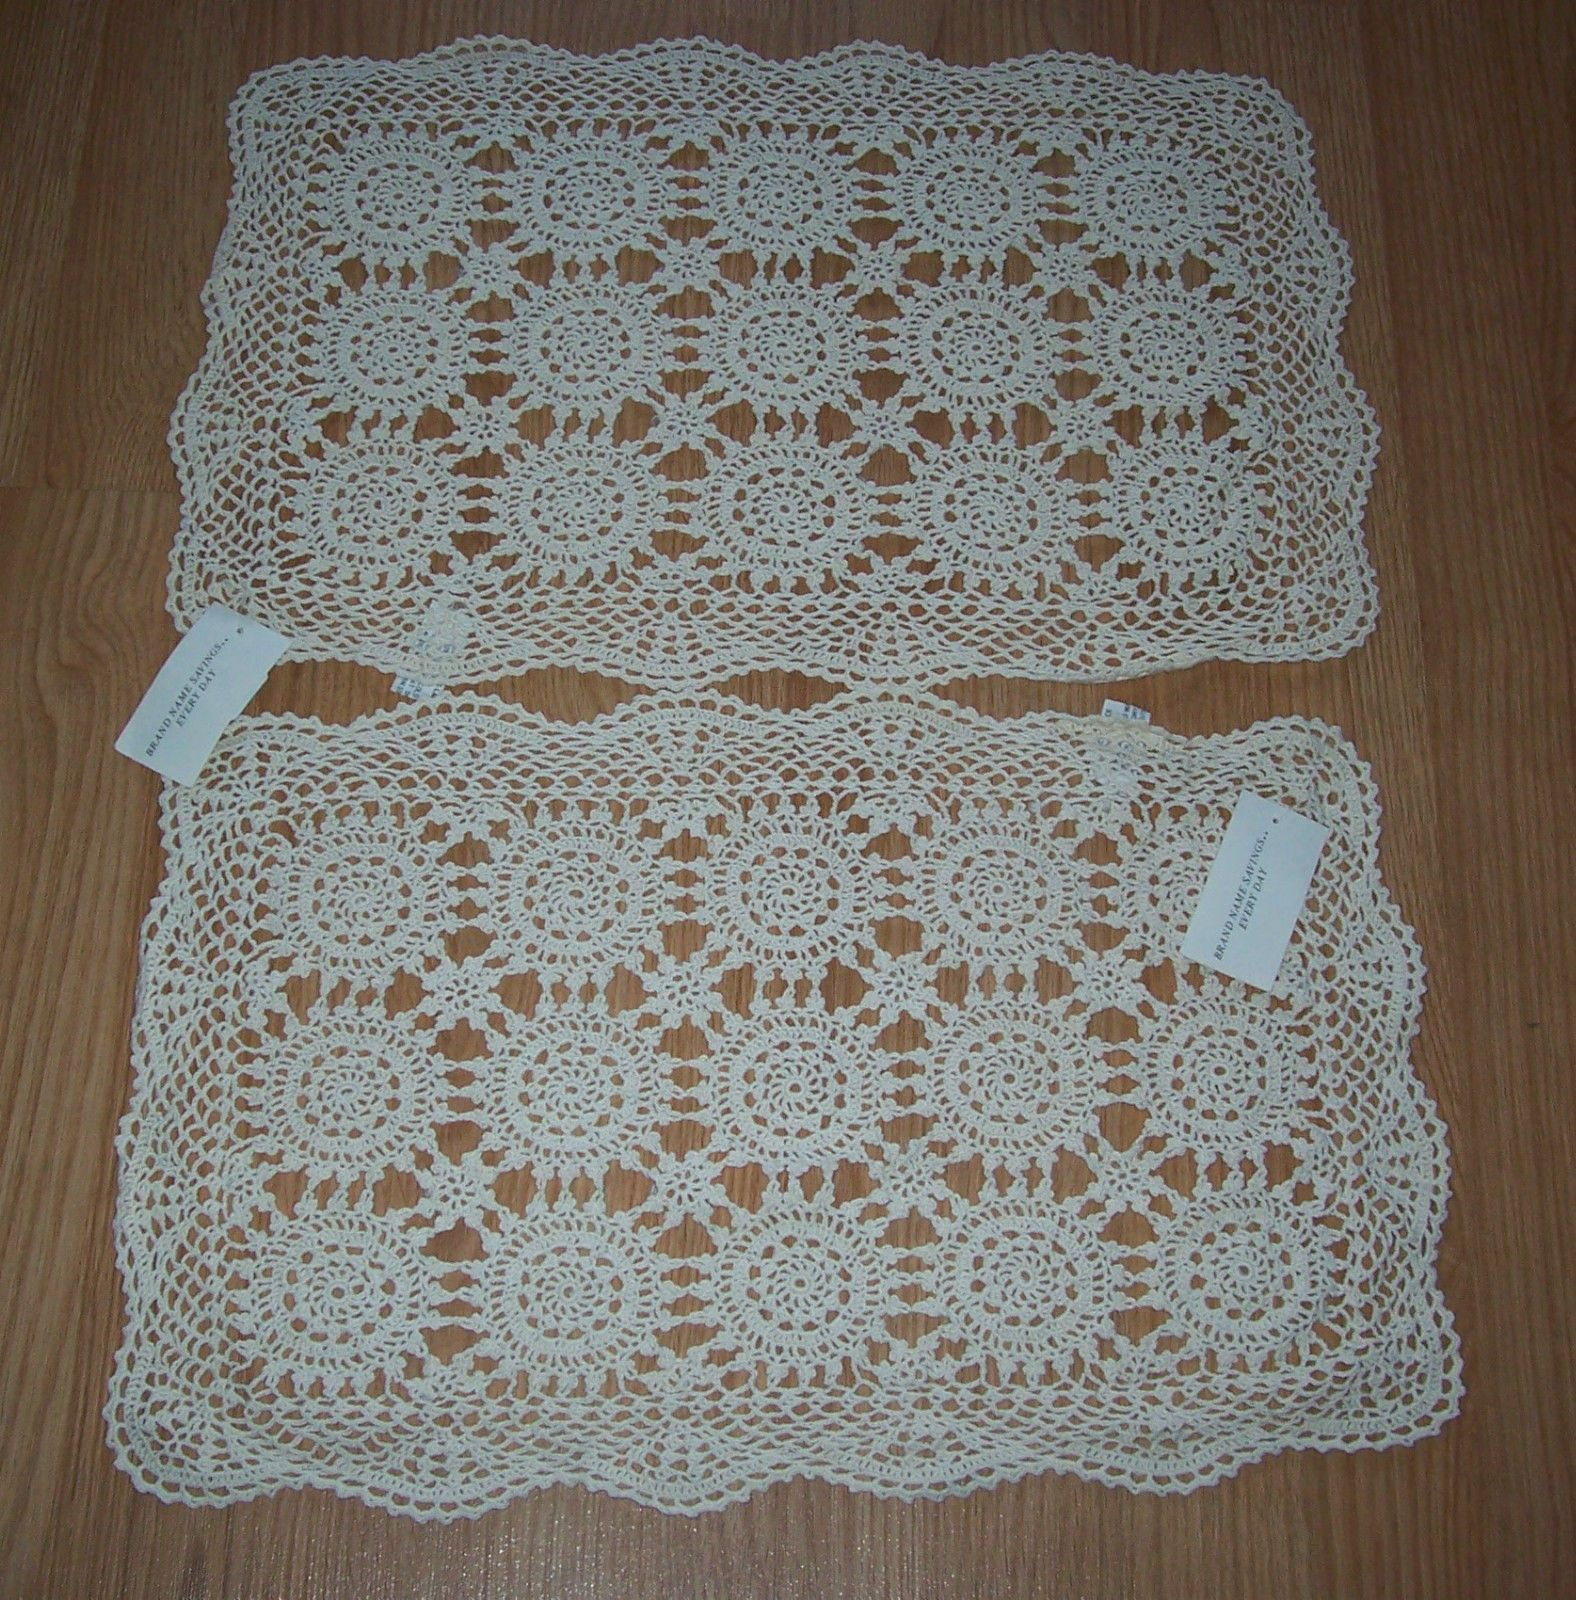 2 keeco hand crochet 100 cotton lace 13x19 doilies placemats 2 keeco hand crochet 100 cotton lace 13x19 doilies placemats ebay bankloansurffo Image collections